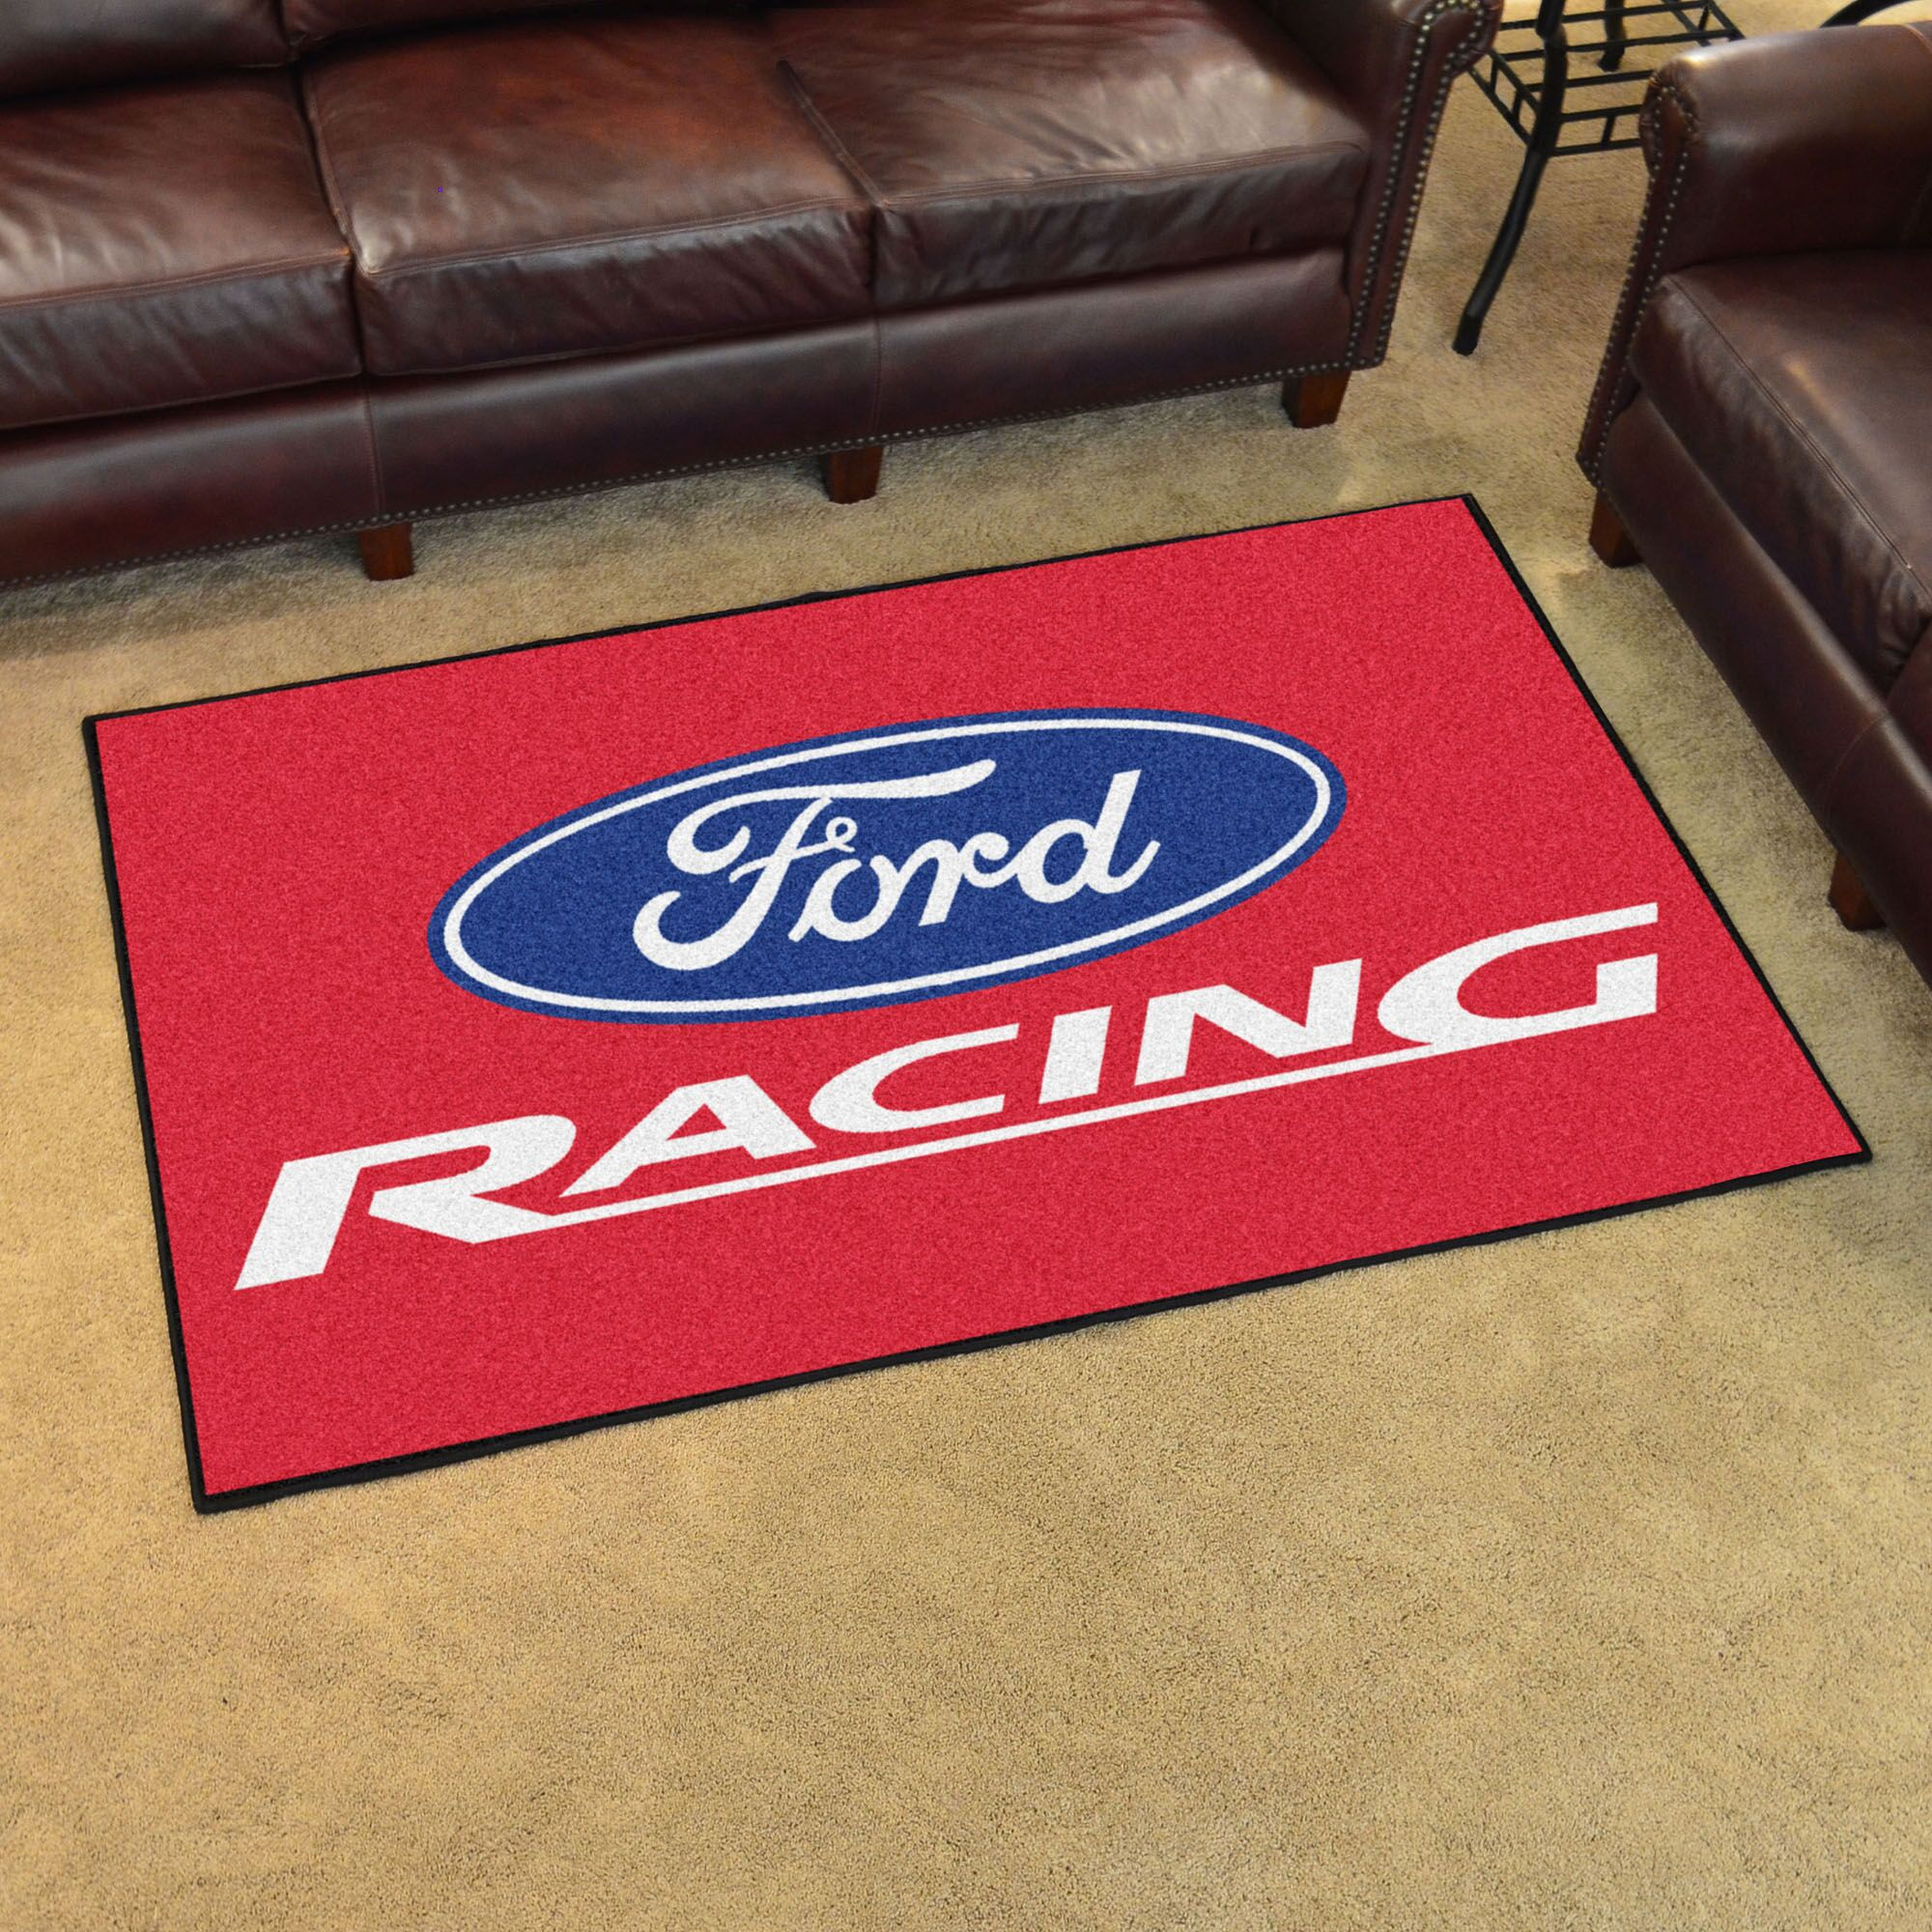 Ford - Ford Racing Tailgater Mat Rug Size: 4' x 6'